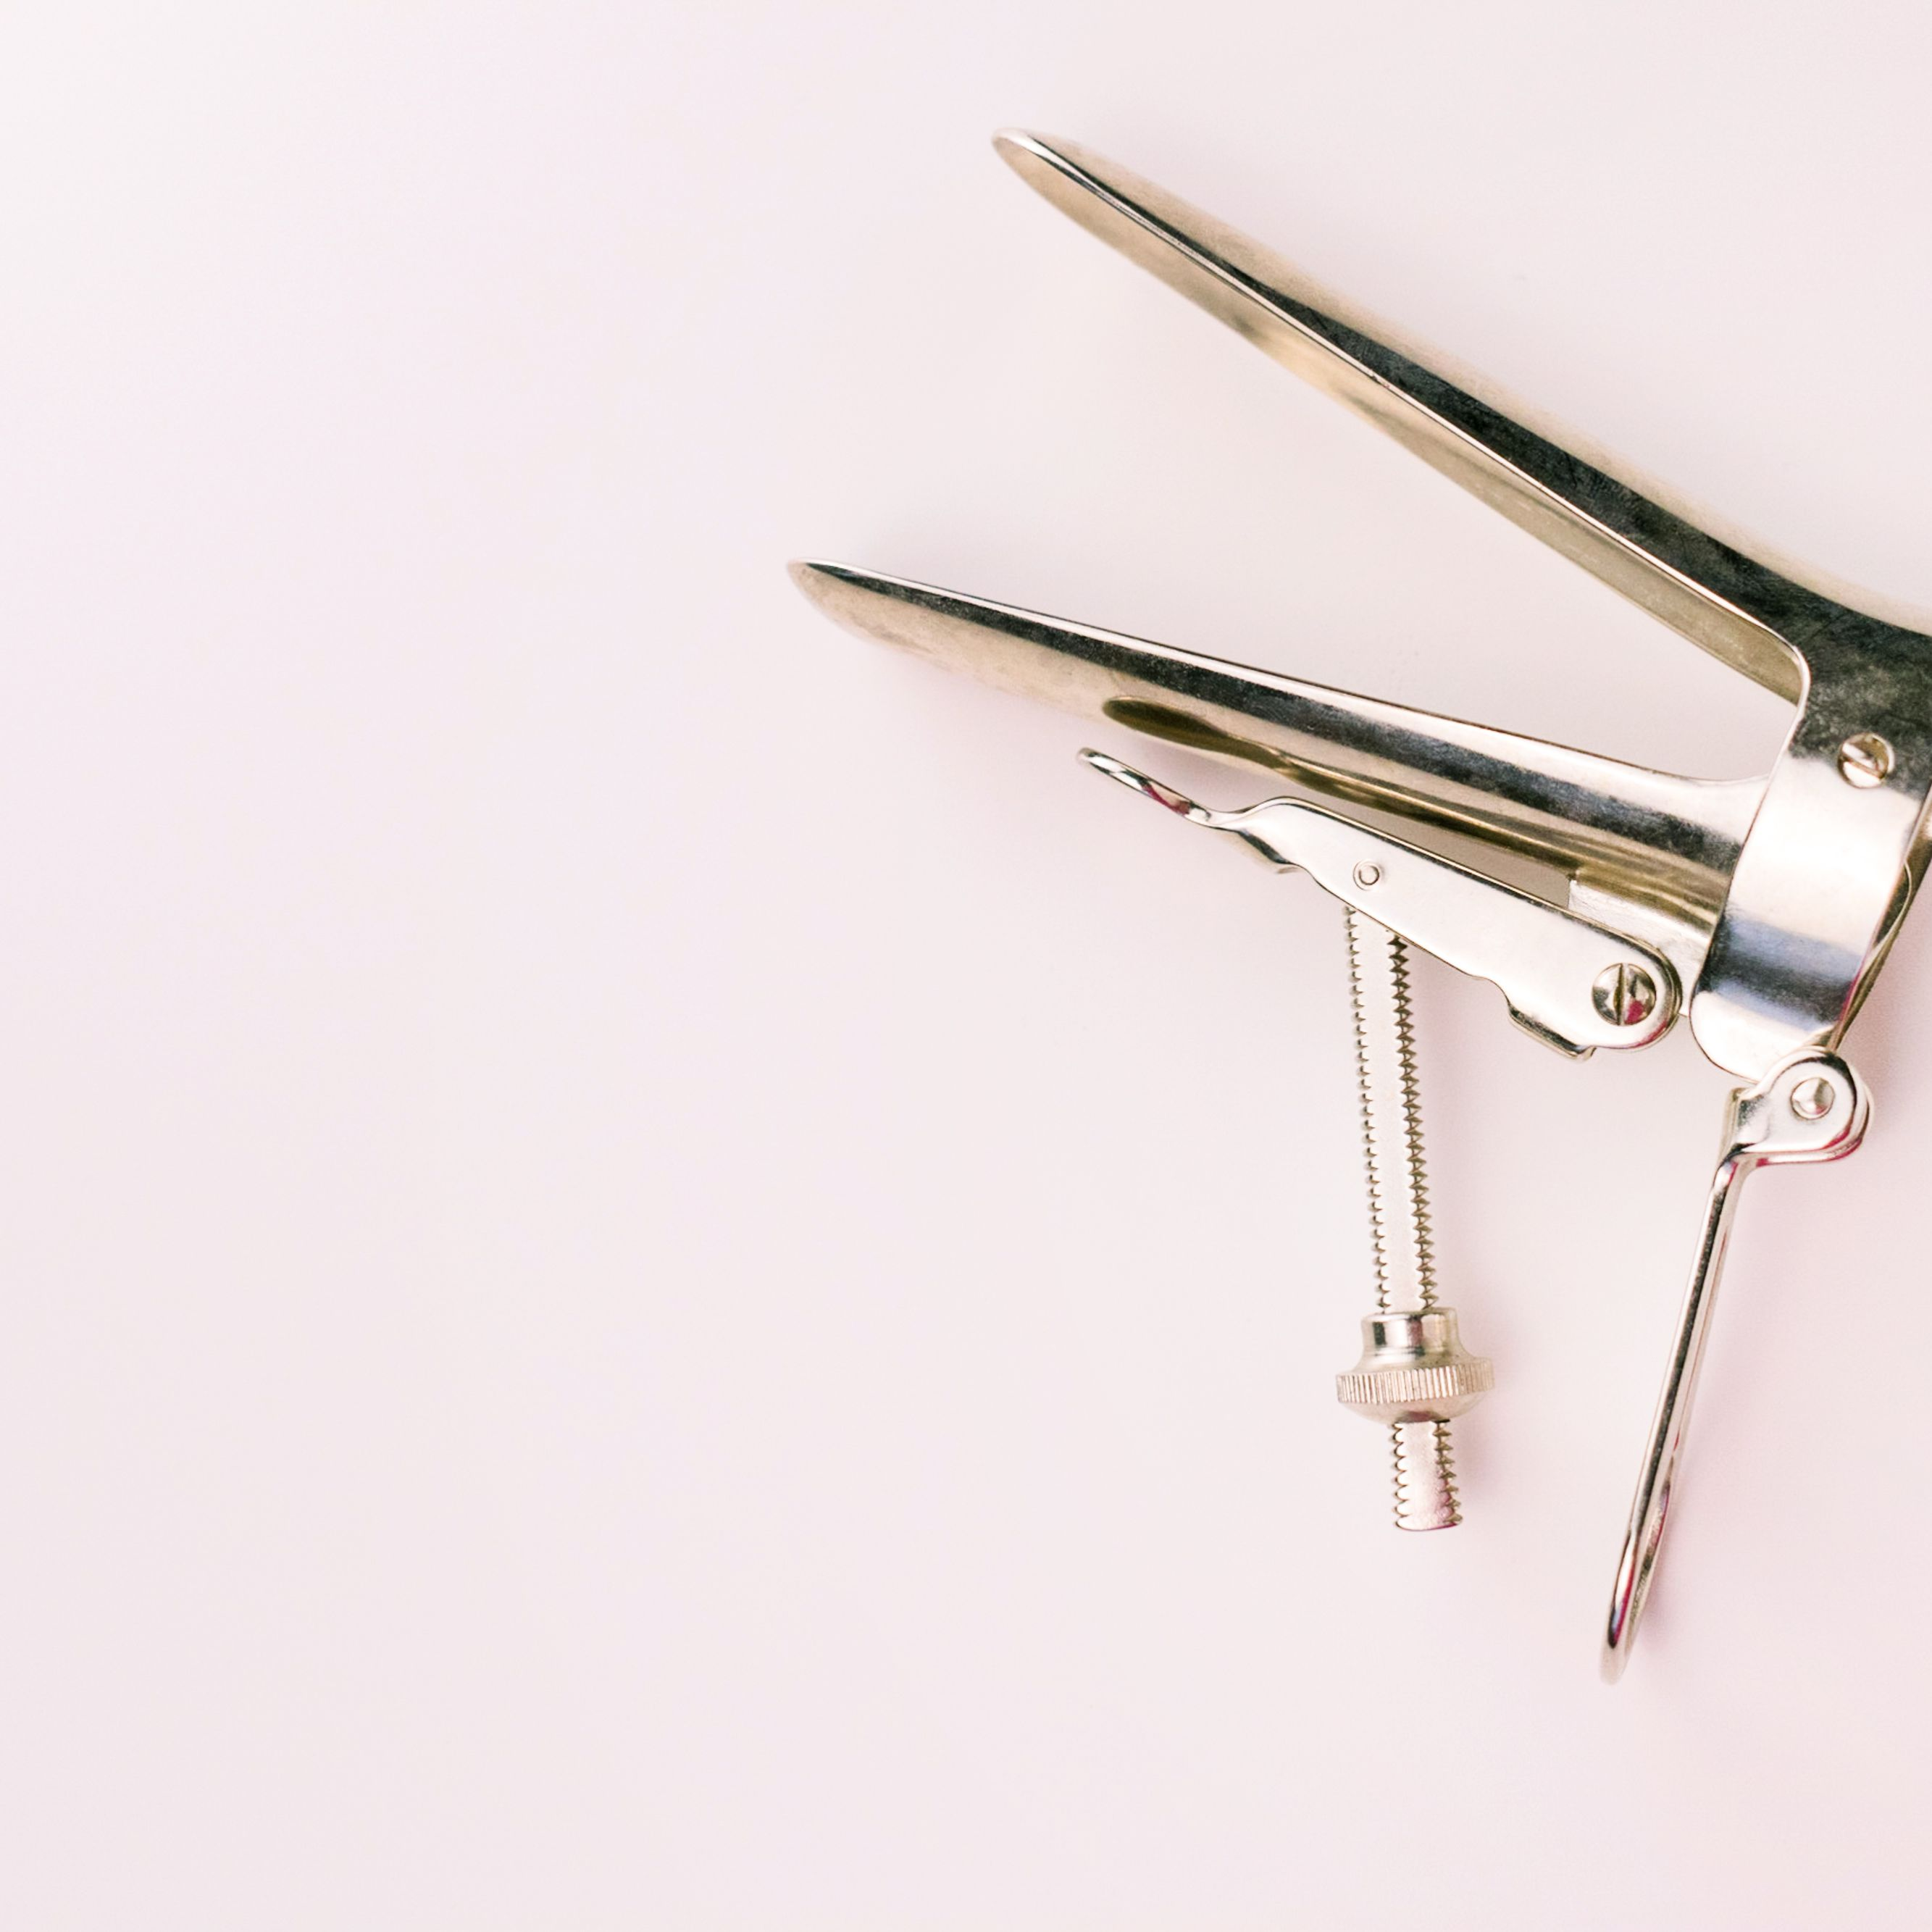 gynecological-mirror-on-a-white-background--copy-space-gynecological-examination-instrument--1223609658-990a83e77e7d4256922b88f54204441d.jpg